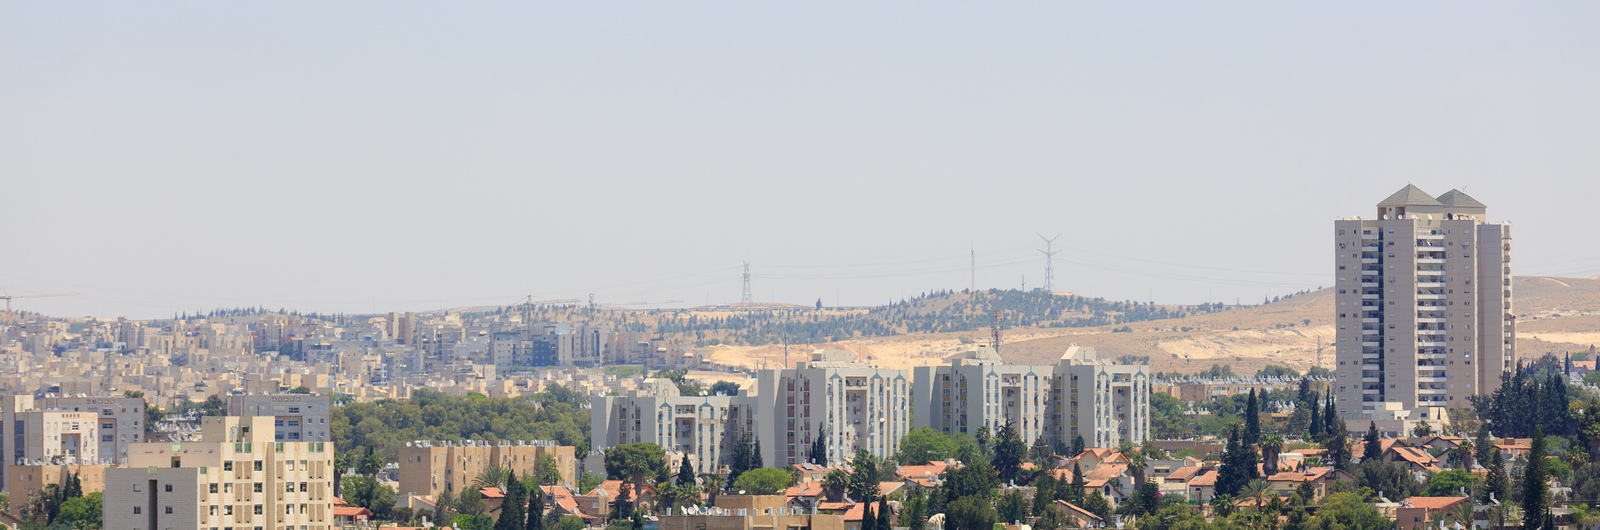 beer sheva city header 1